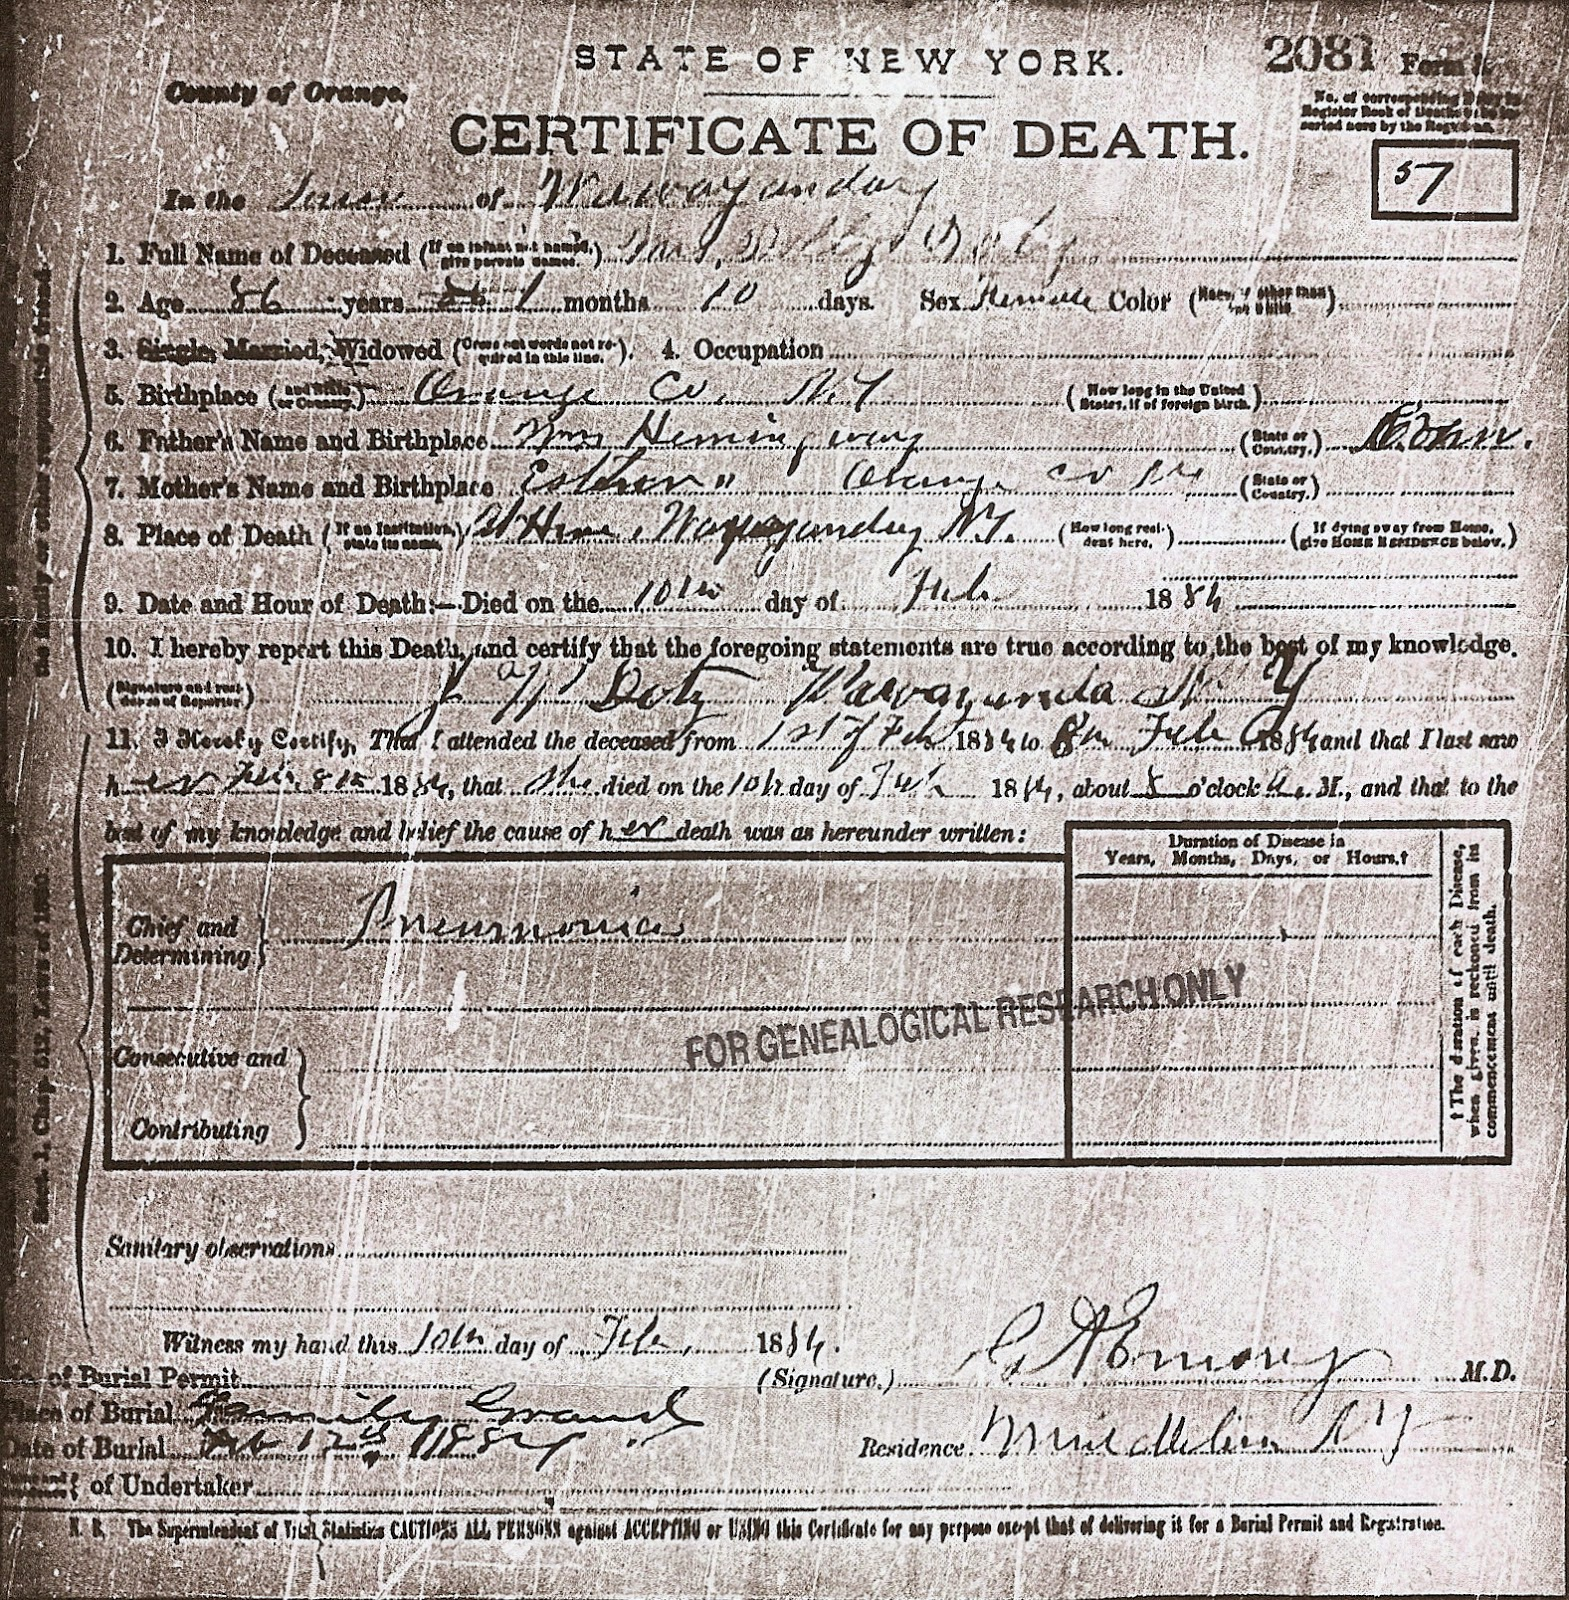 Dolly Doty's Certificate of Death issued by the State of New York